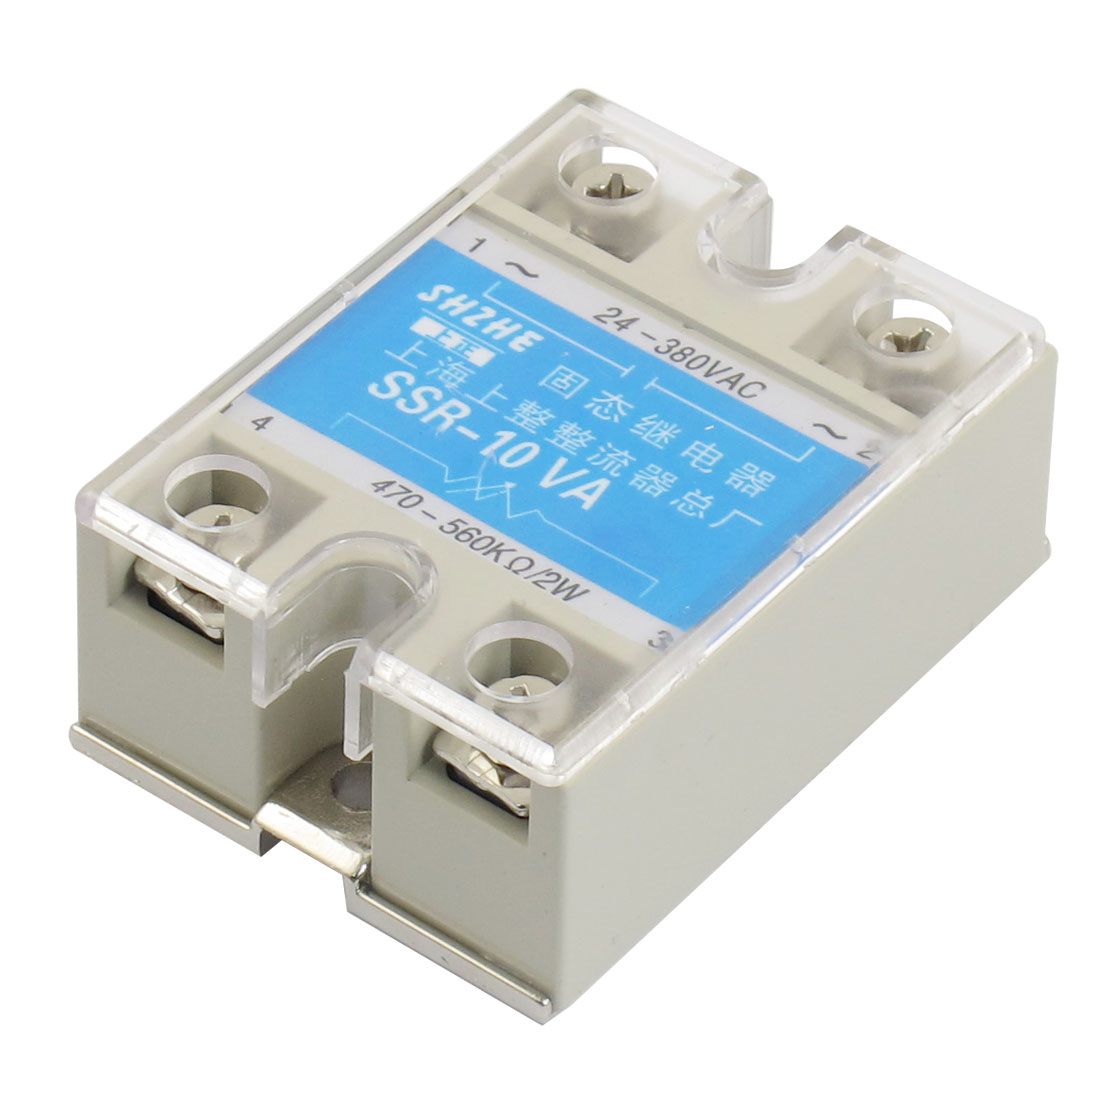 SSR-10VA 10A AC 24-380V Output Covered Adjustable Solid State Module Relay